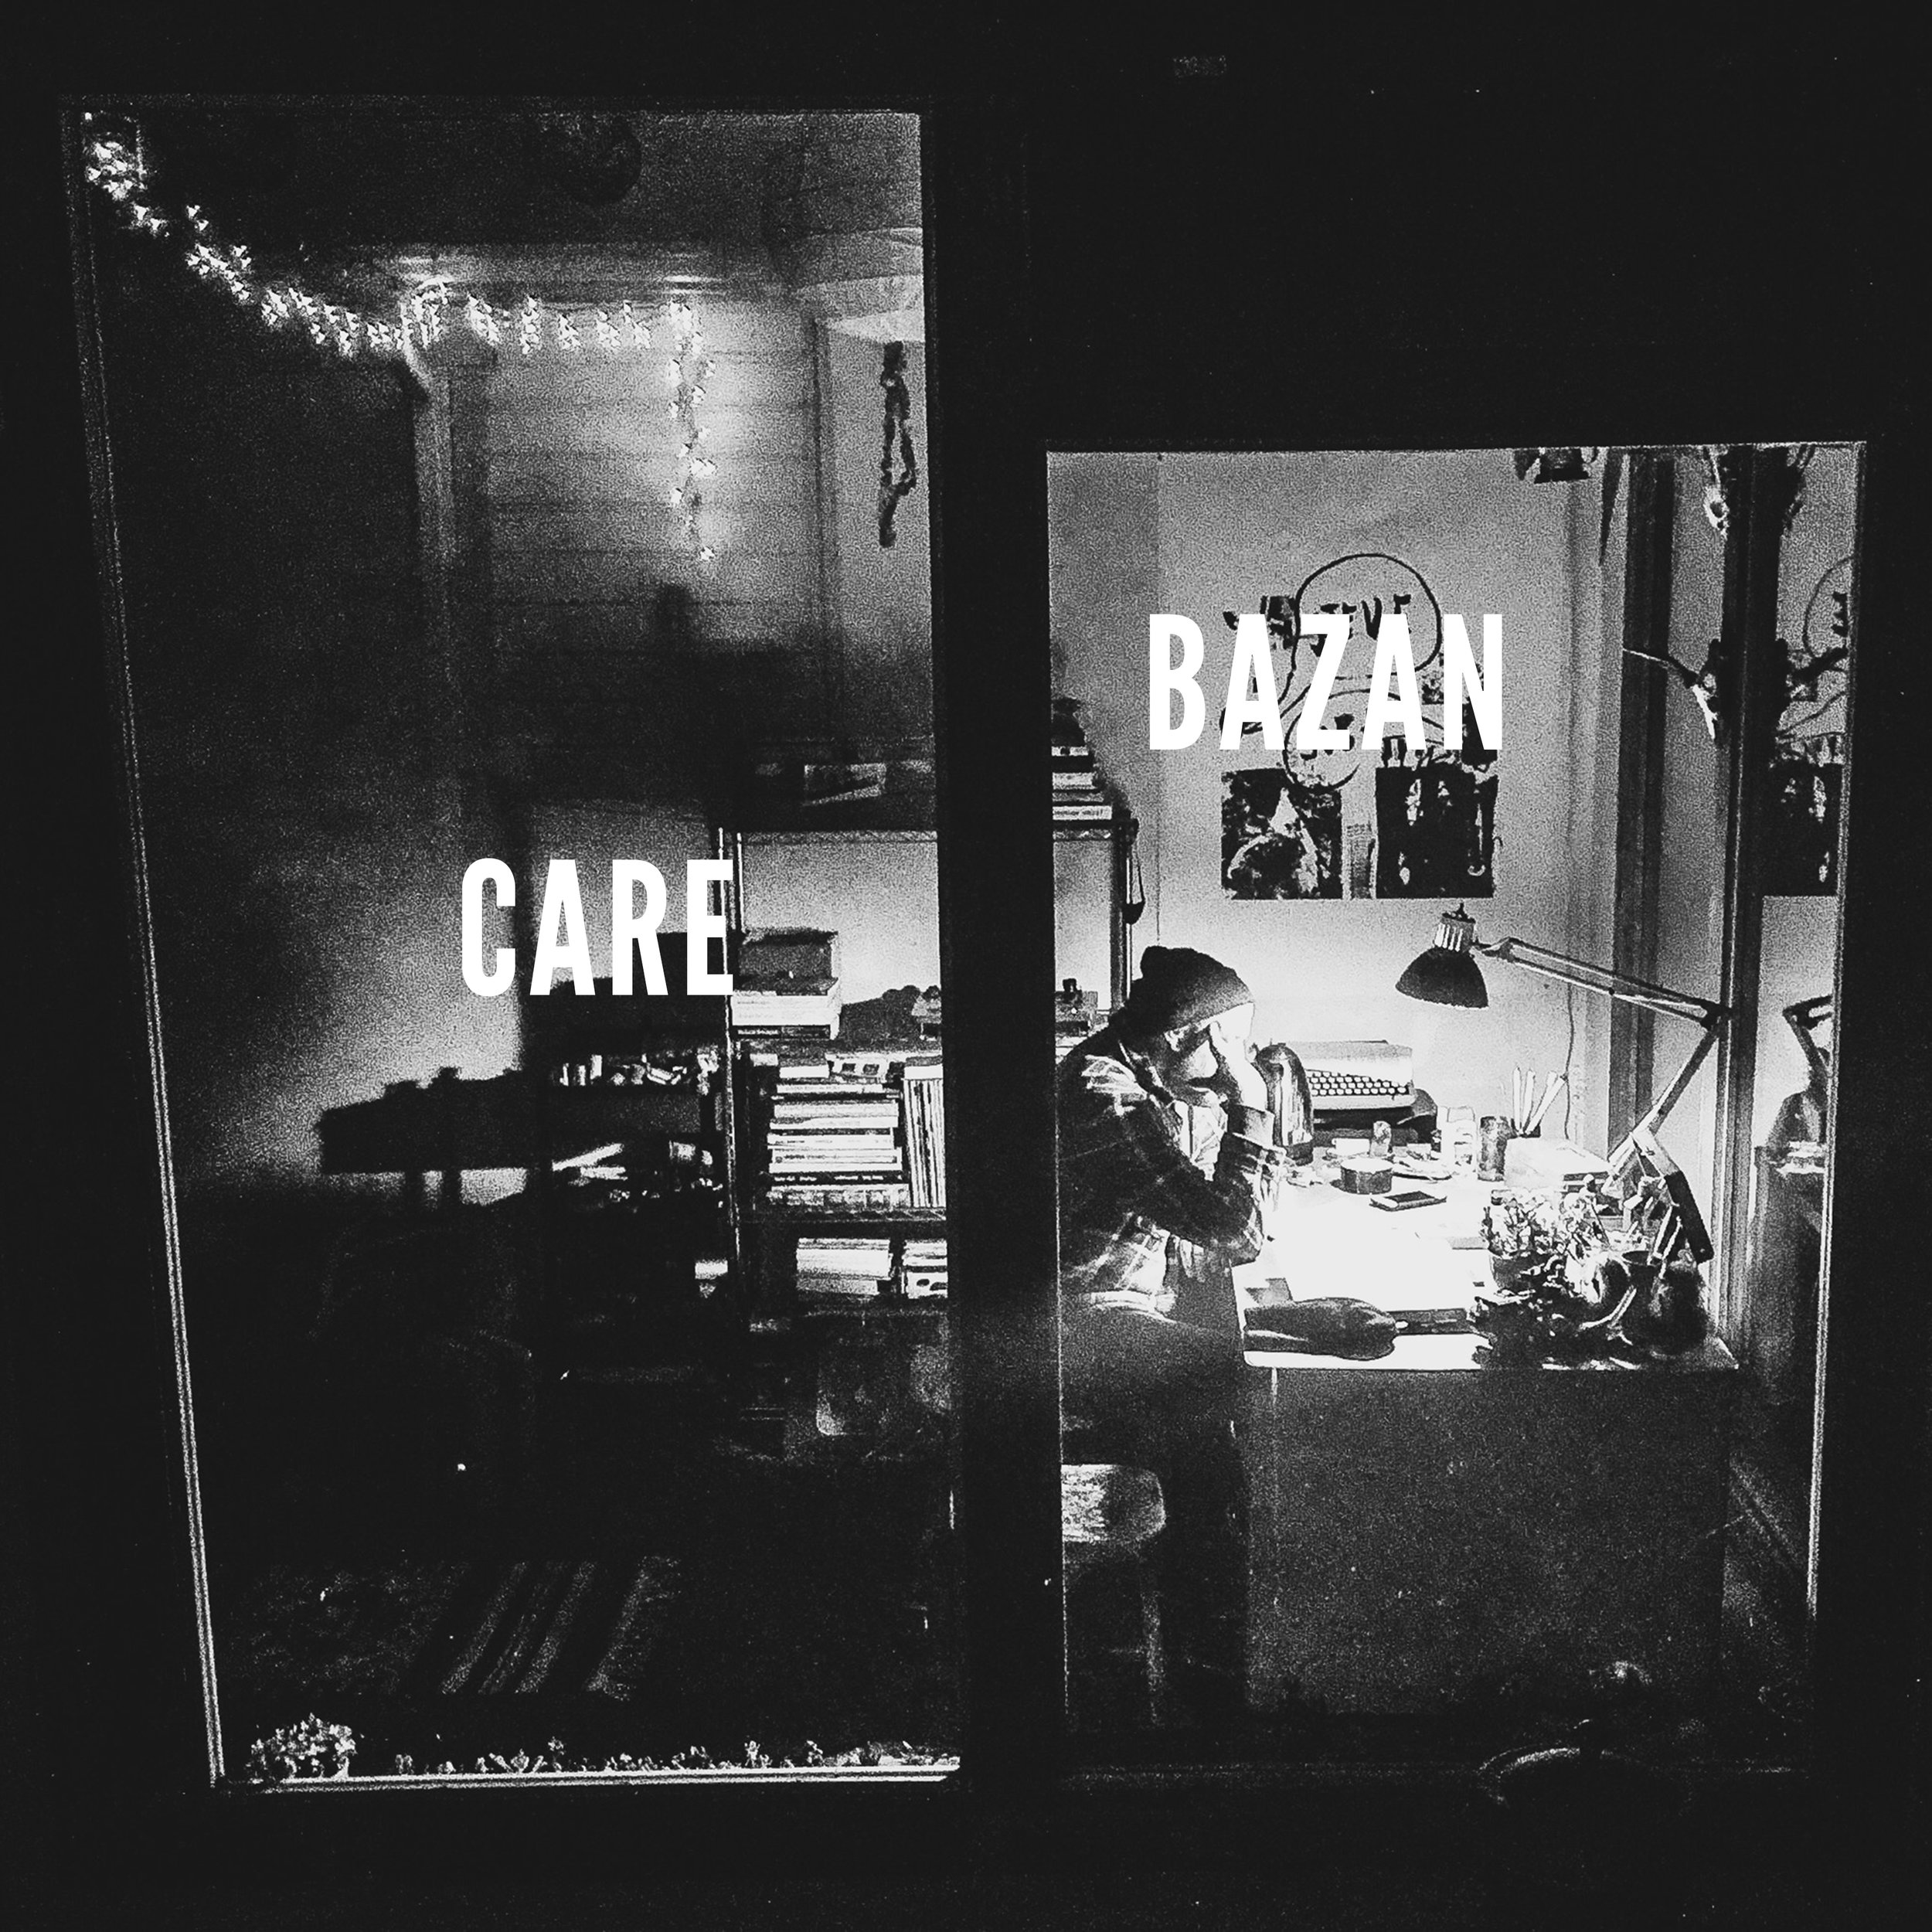 Bazan-Care-album-cover.jpg